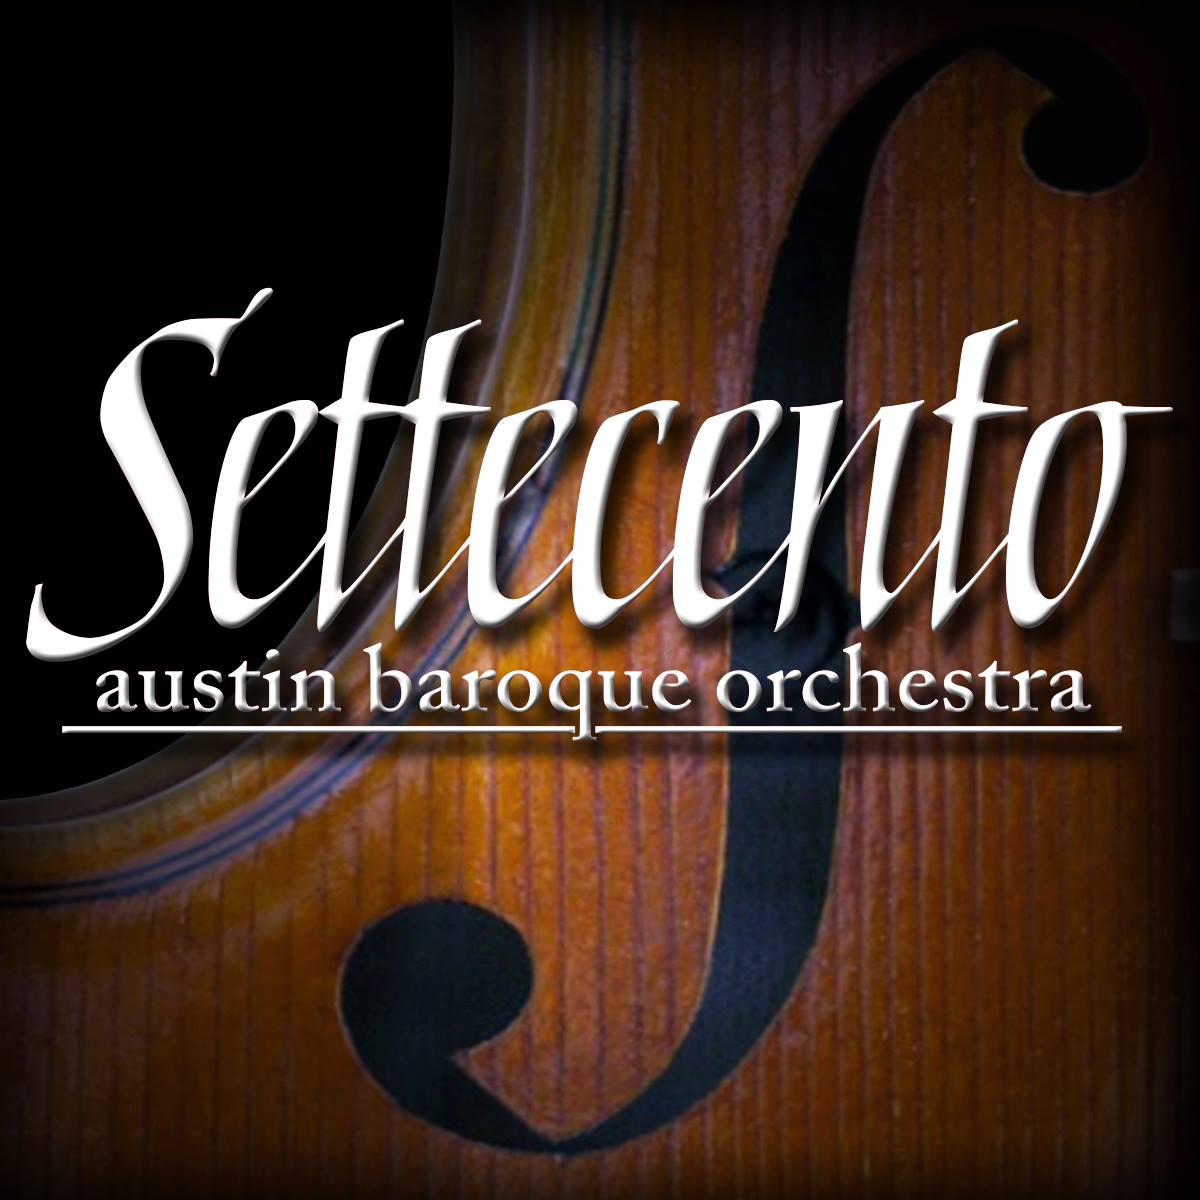 Austin Baroque Orchestra Chamber Players